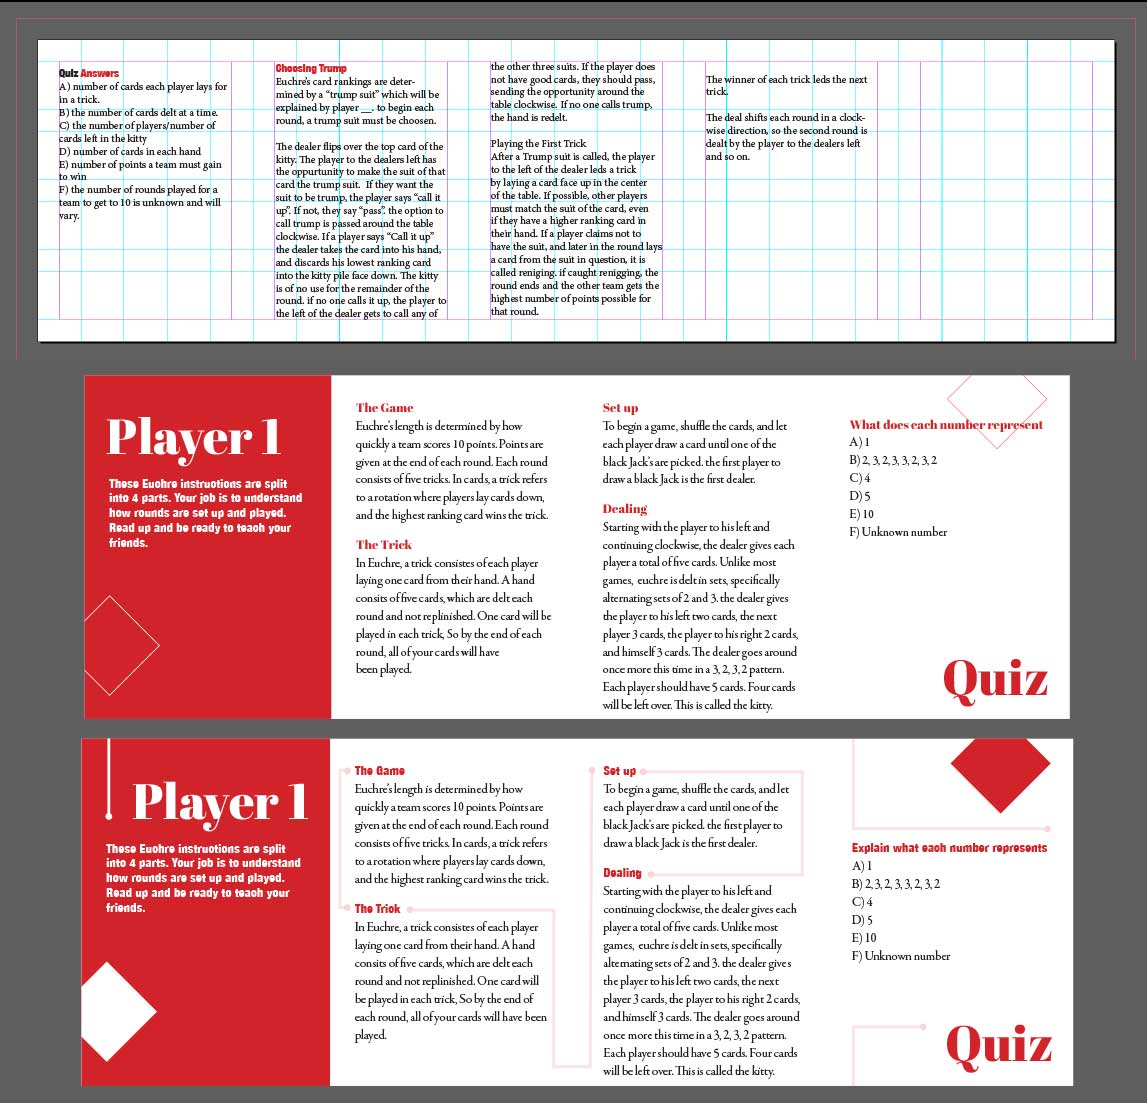 We split up the work into 3 parts, I designed the booklets, while my others on my team worked on the packaging and cards. Our main struggle at this point was how to split up the instructions in a way that made sense to each player, not just the first player. At this point, I only focused on creating a grid, and what needed to be included on a practical level. The lines on the lower set were included as a visual representation to connecting ideas together.